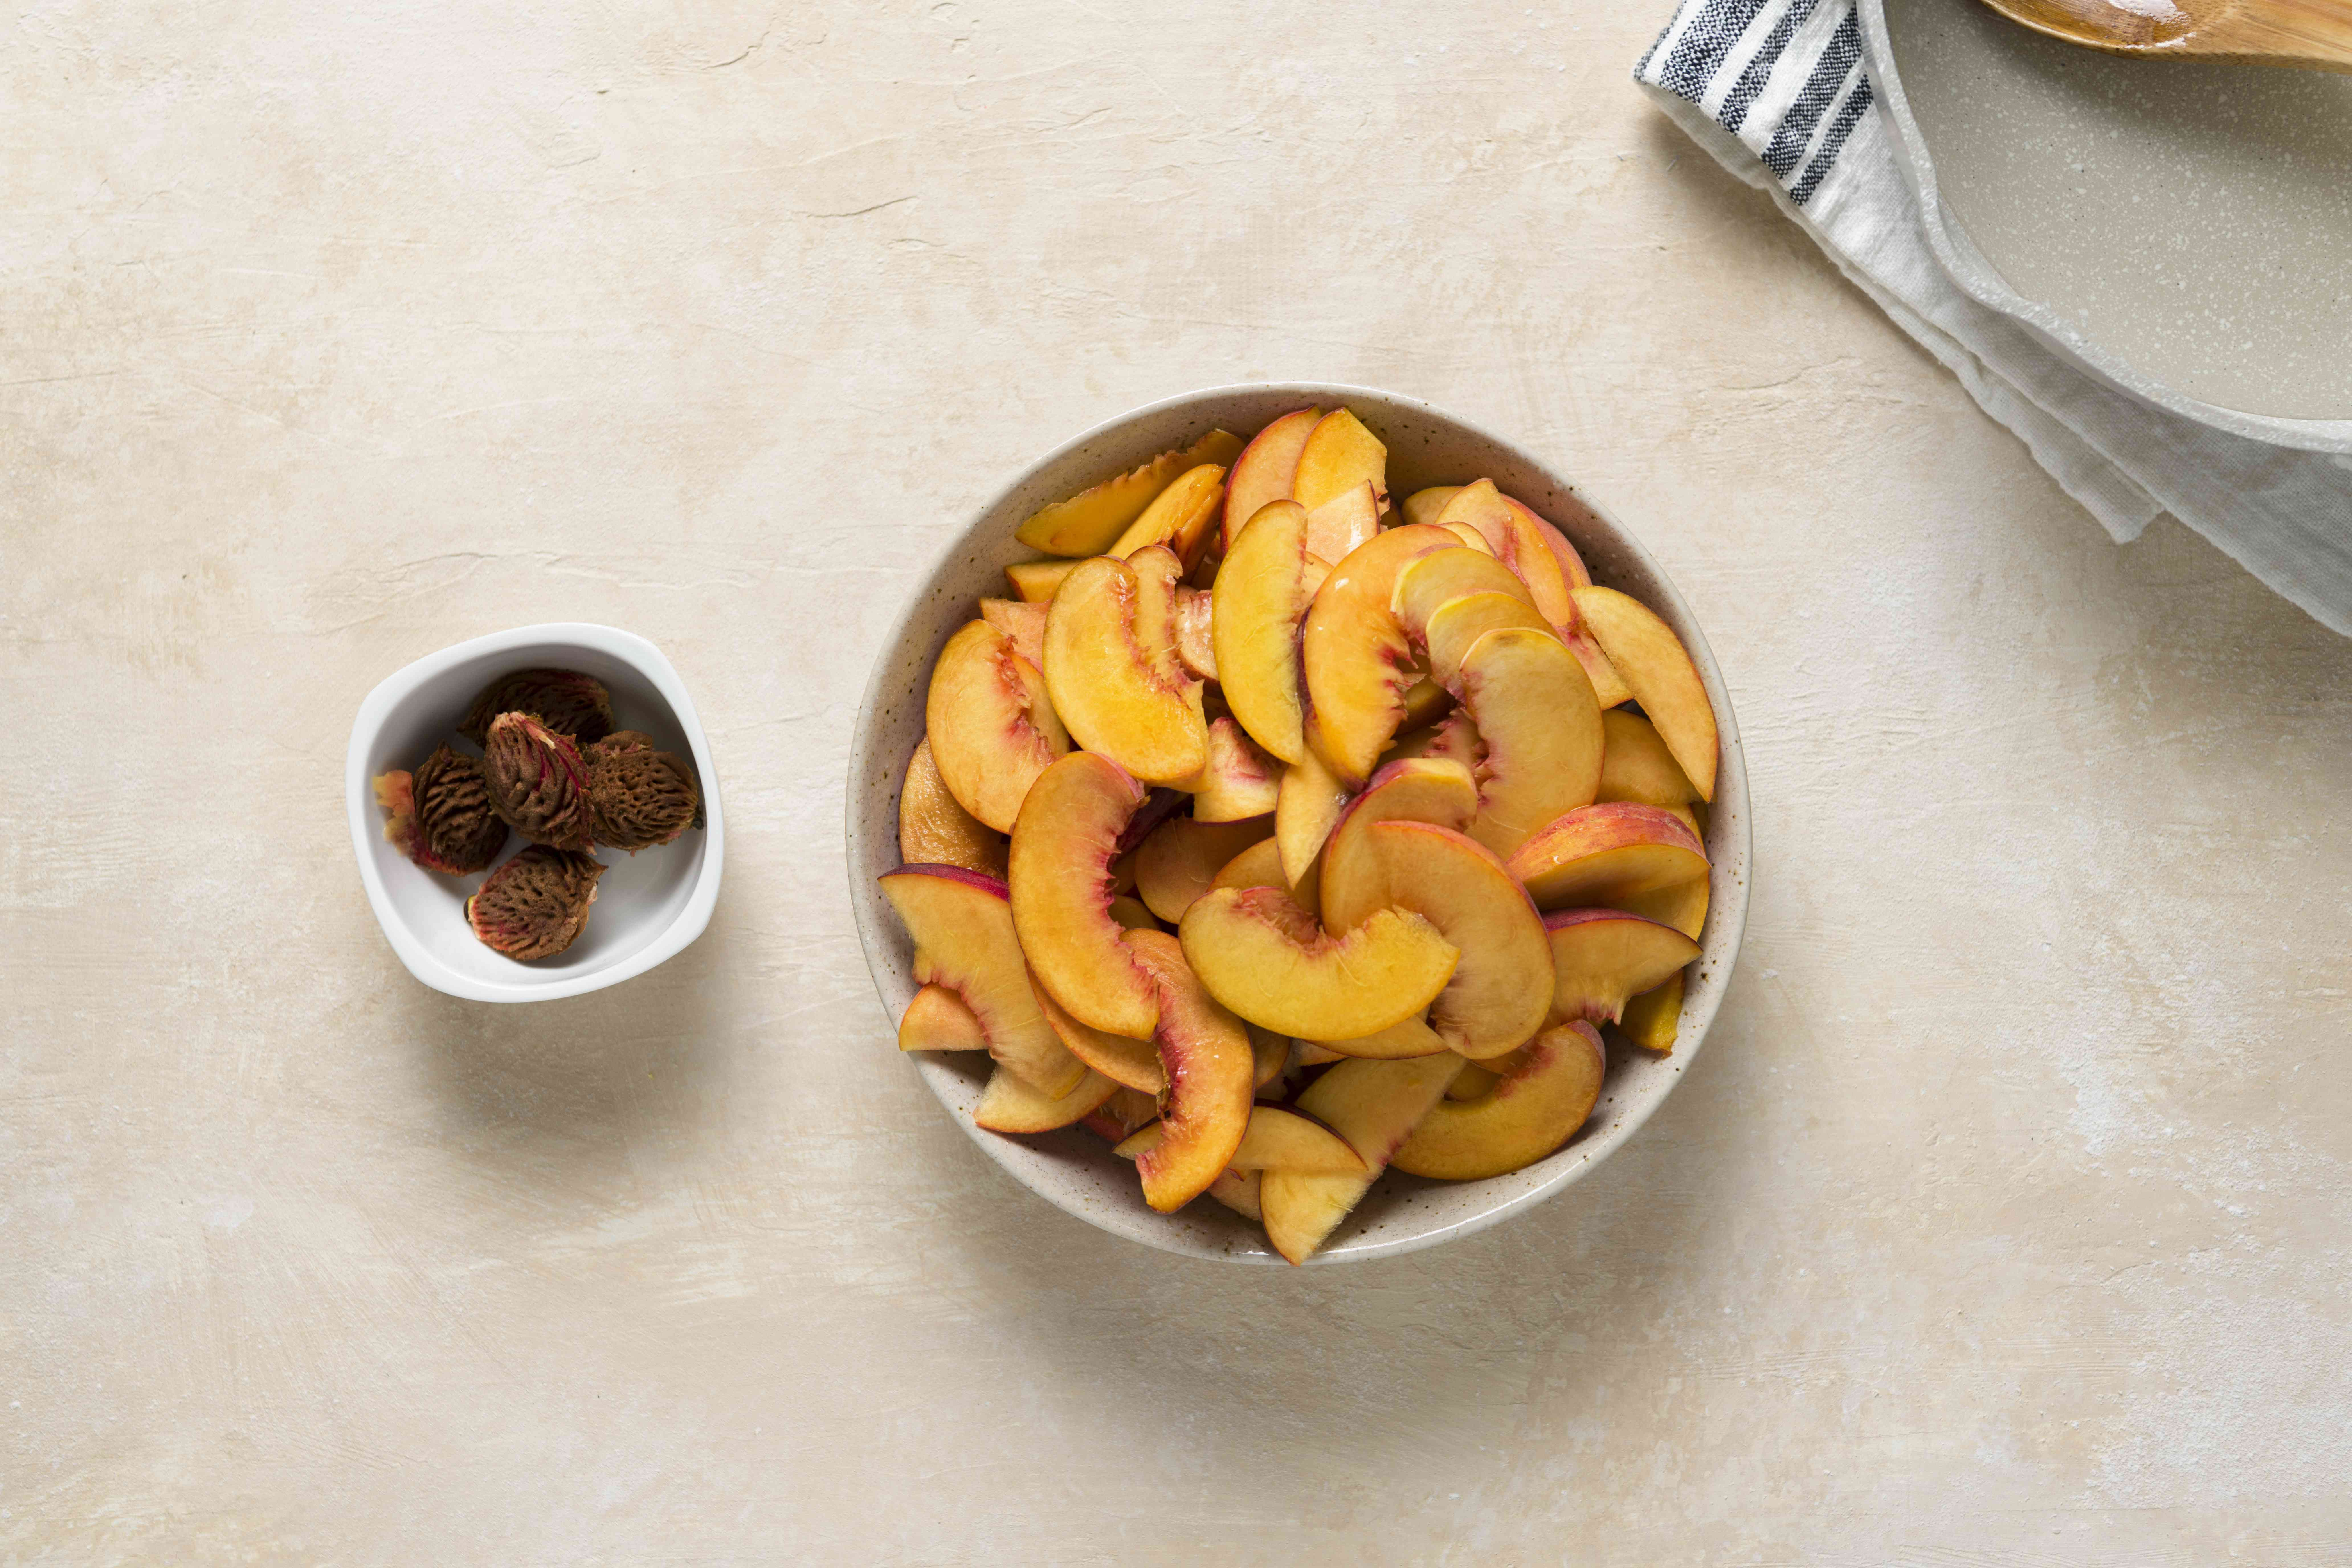 A bowl of sliced peaches